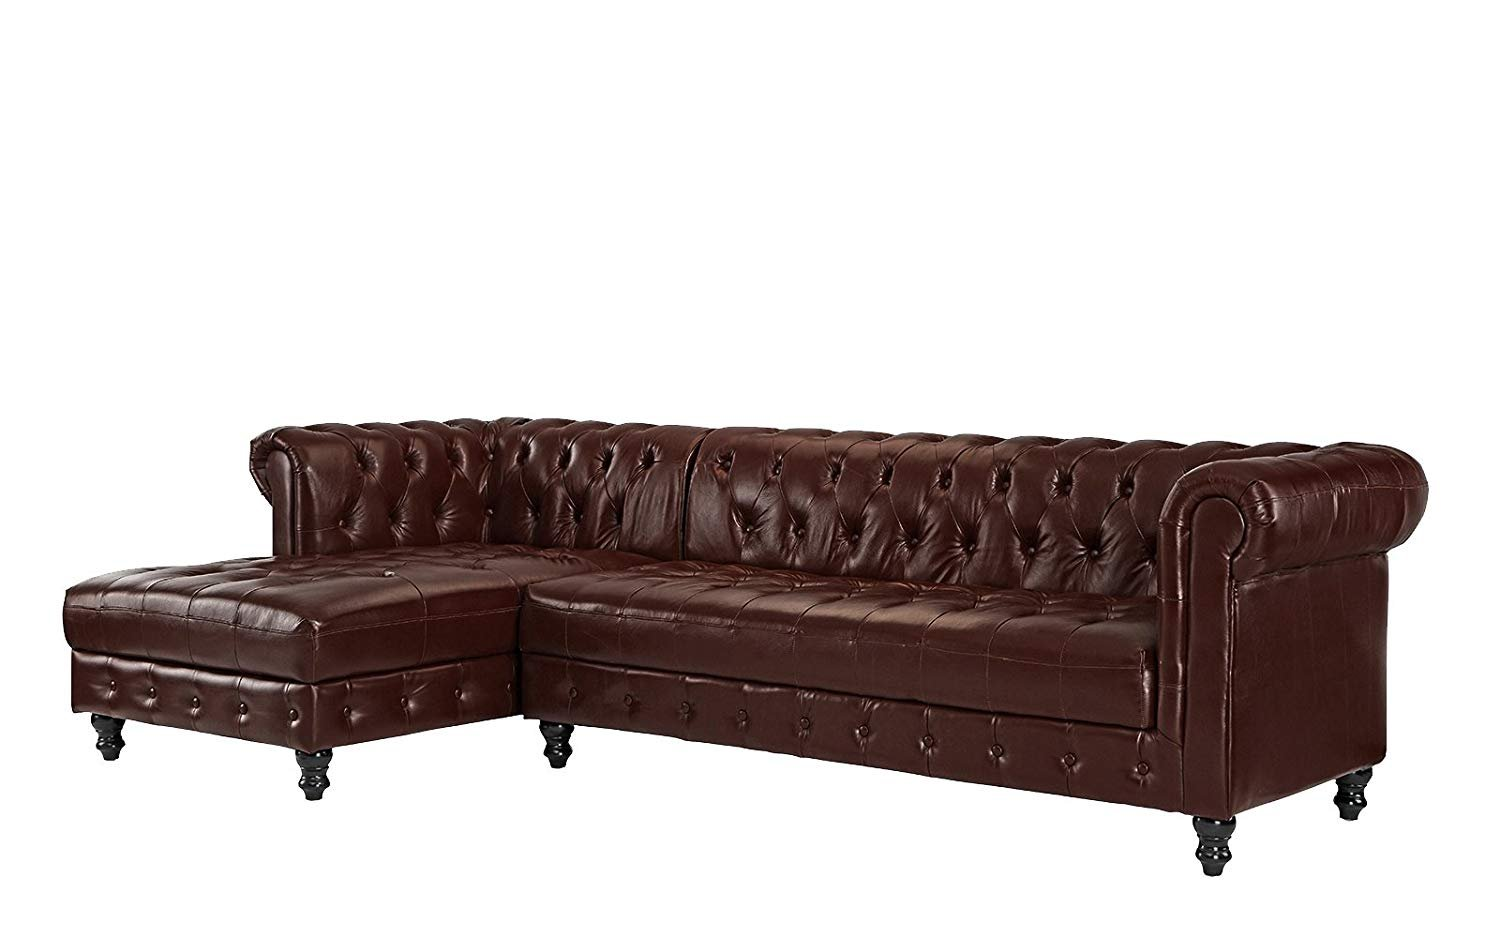 real tufted leather chesterfield l shape sectional sofa left chaise dark brown 662187612881 ebay. Black Bedroom Furniture Sets. Home Design Ideas